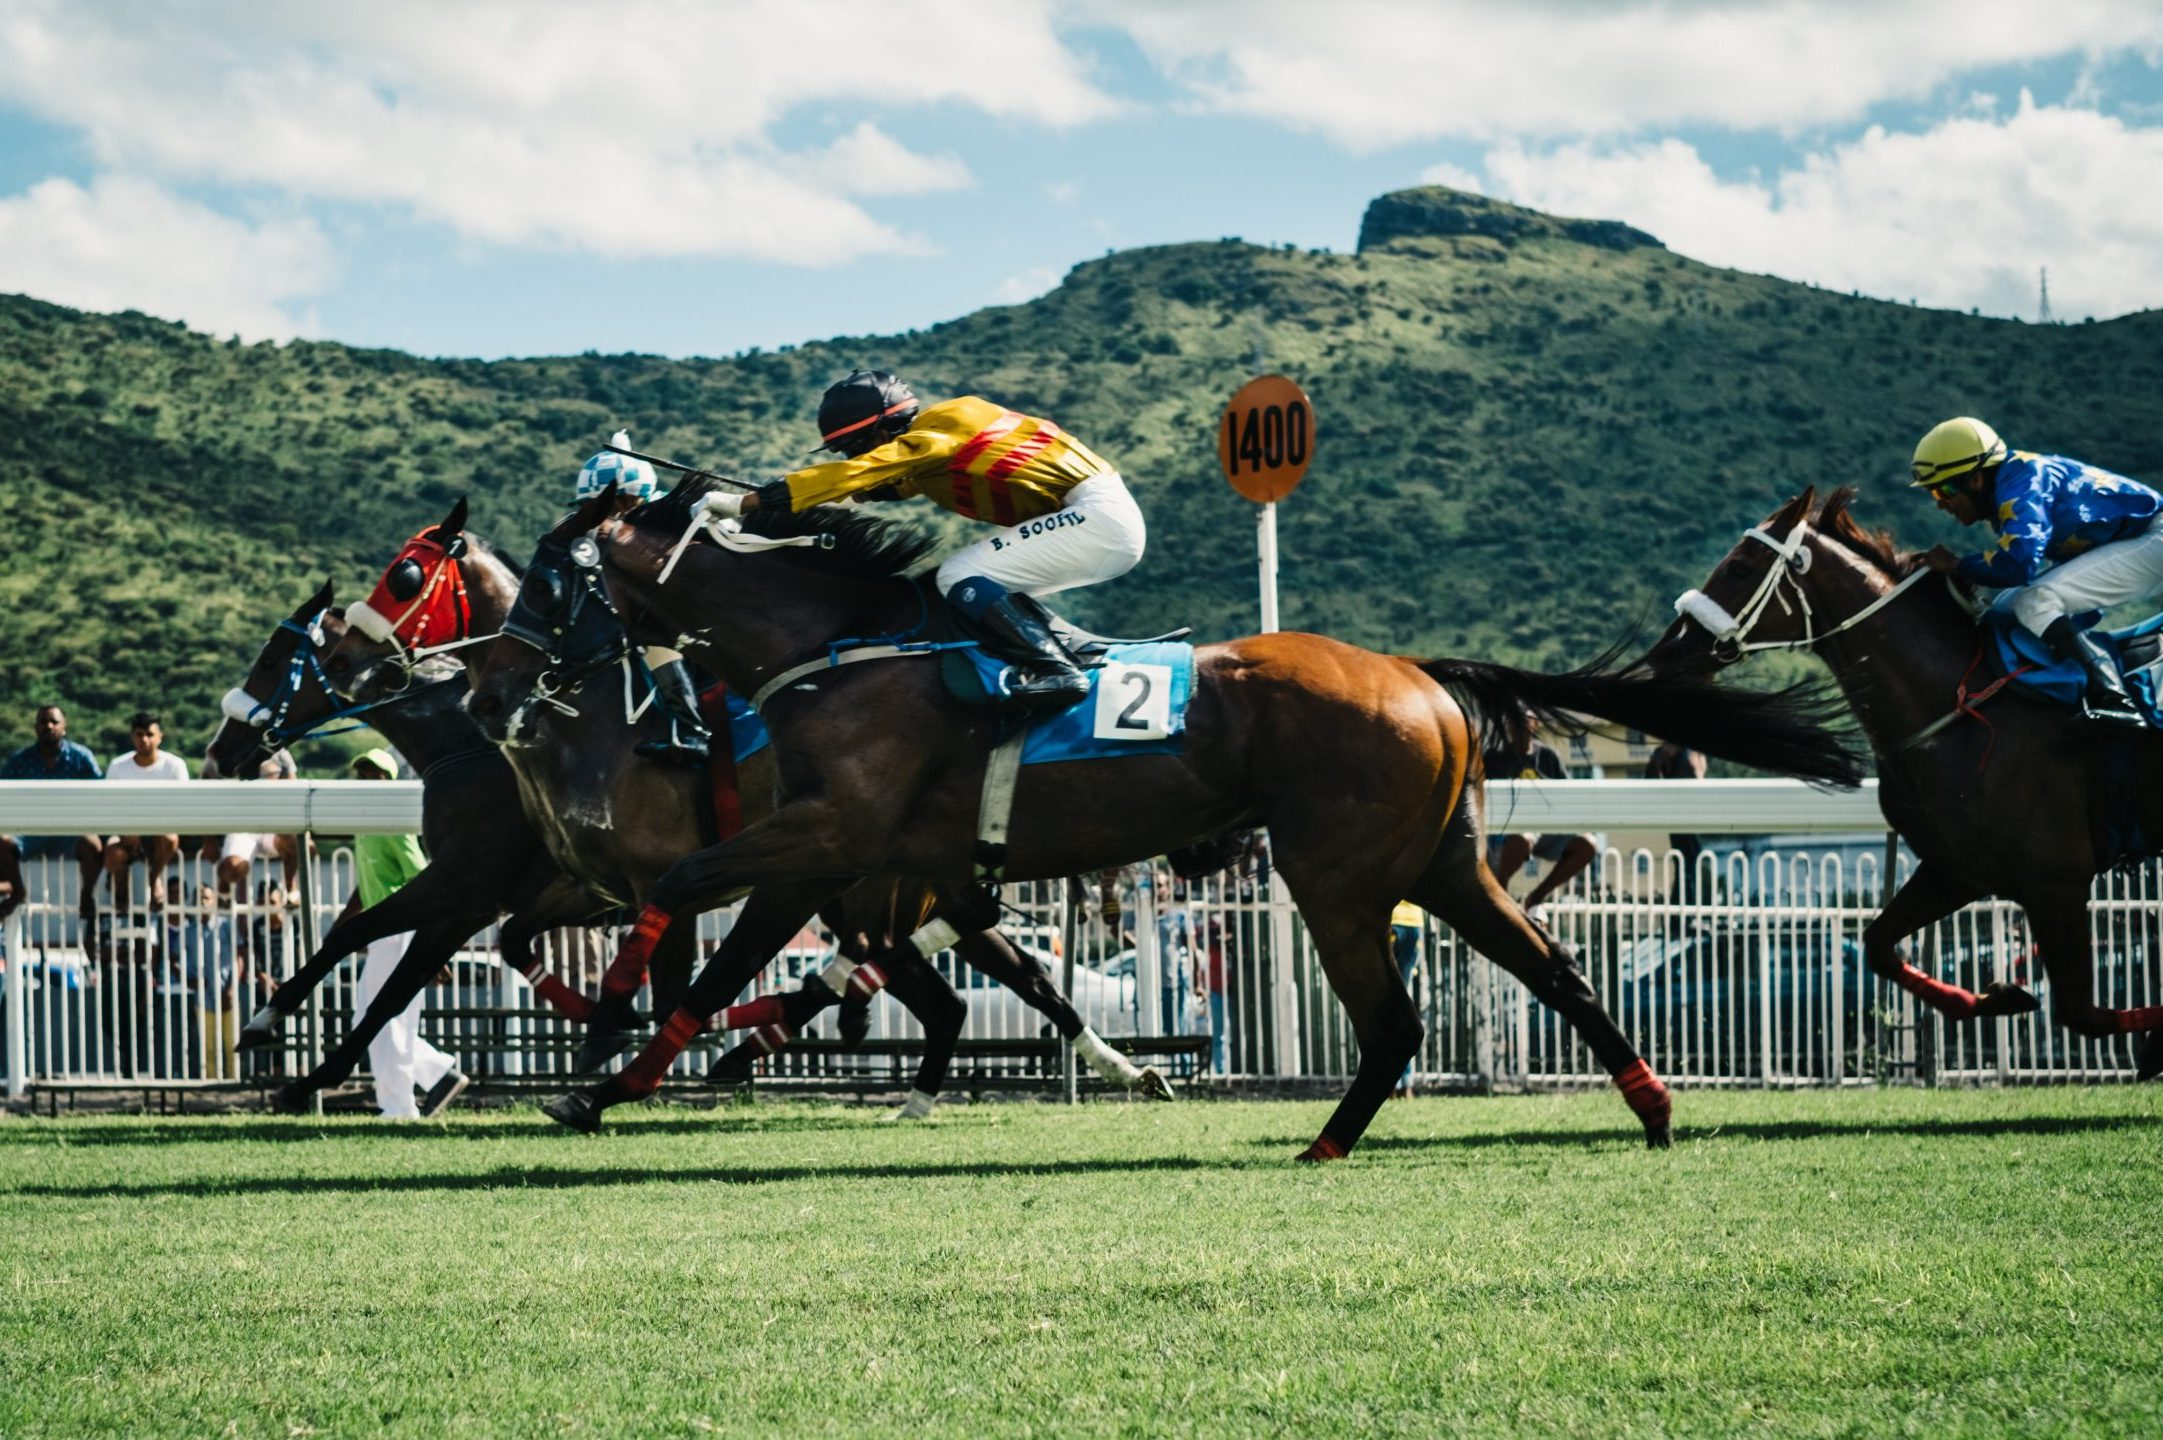 Saddle Up for the Race Night Fundraiser